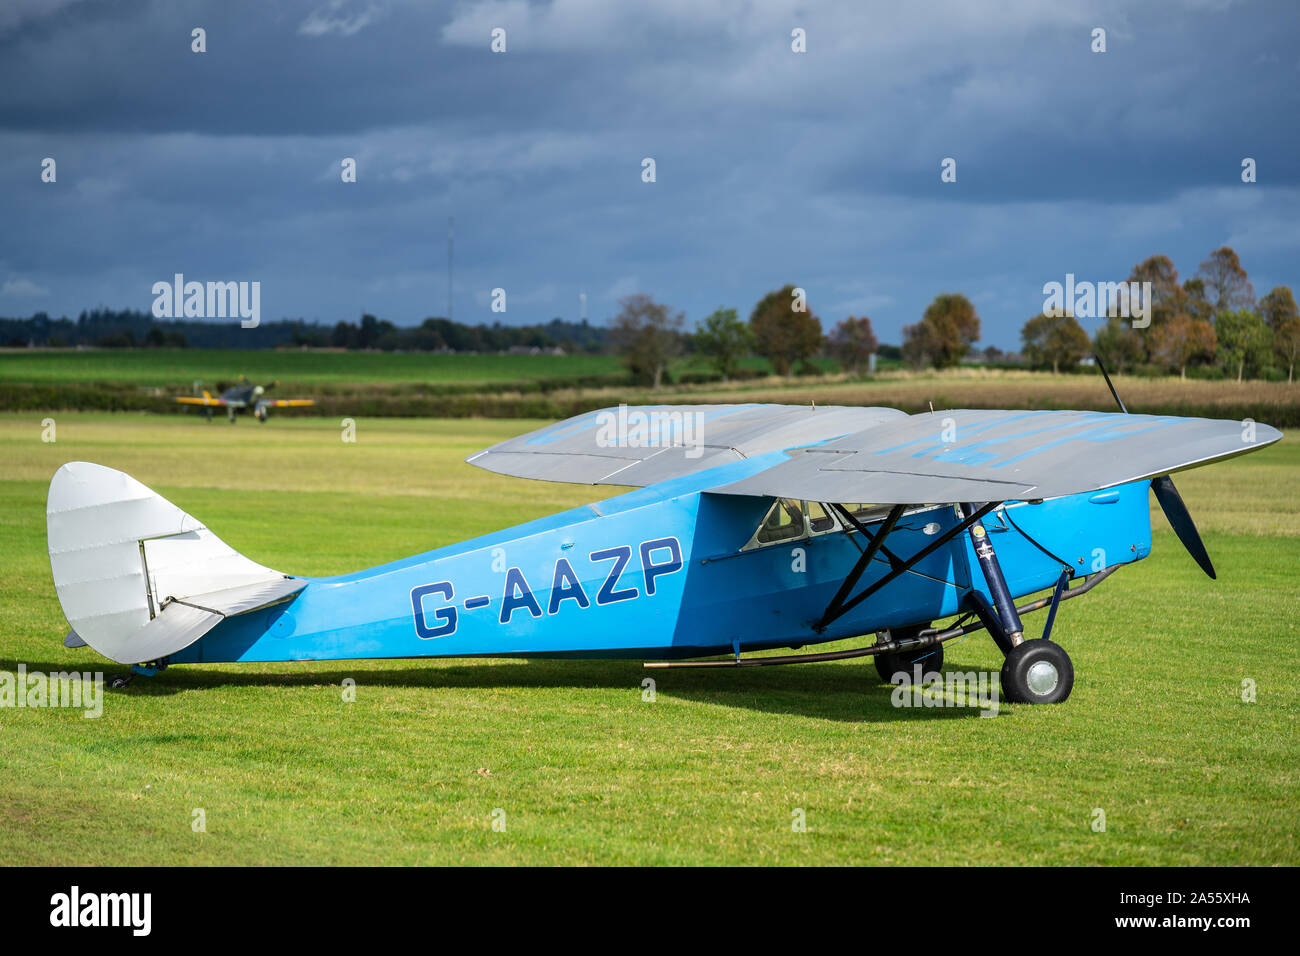 OLD WARDEN, BEDFORDSHIRE, UK ,OCTOBER 6, 2019. De Havilland DH.80A Puss Moth aircraft G-AAZP. Race Day at Shuttleworth. Stock Photo